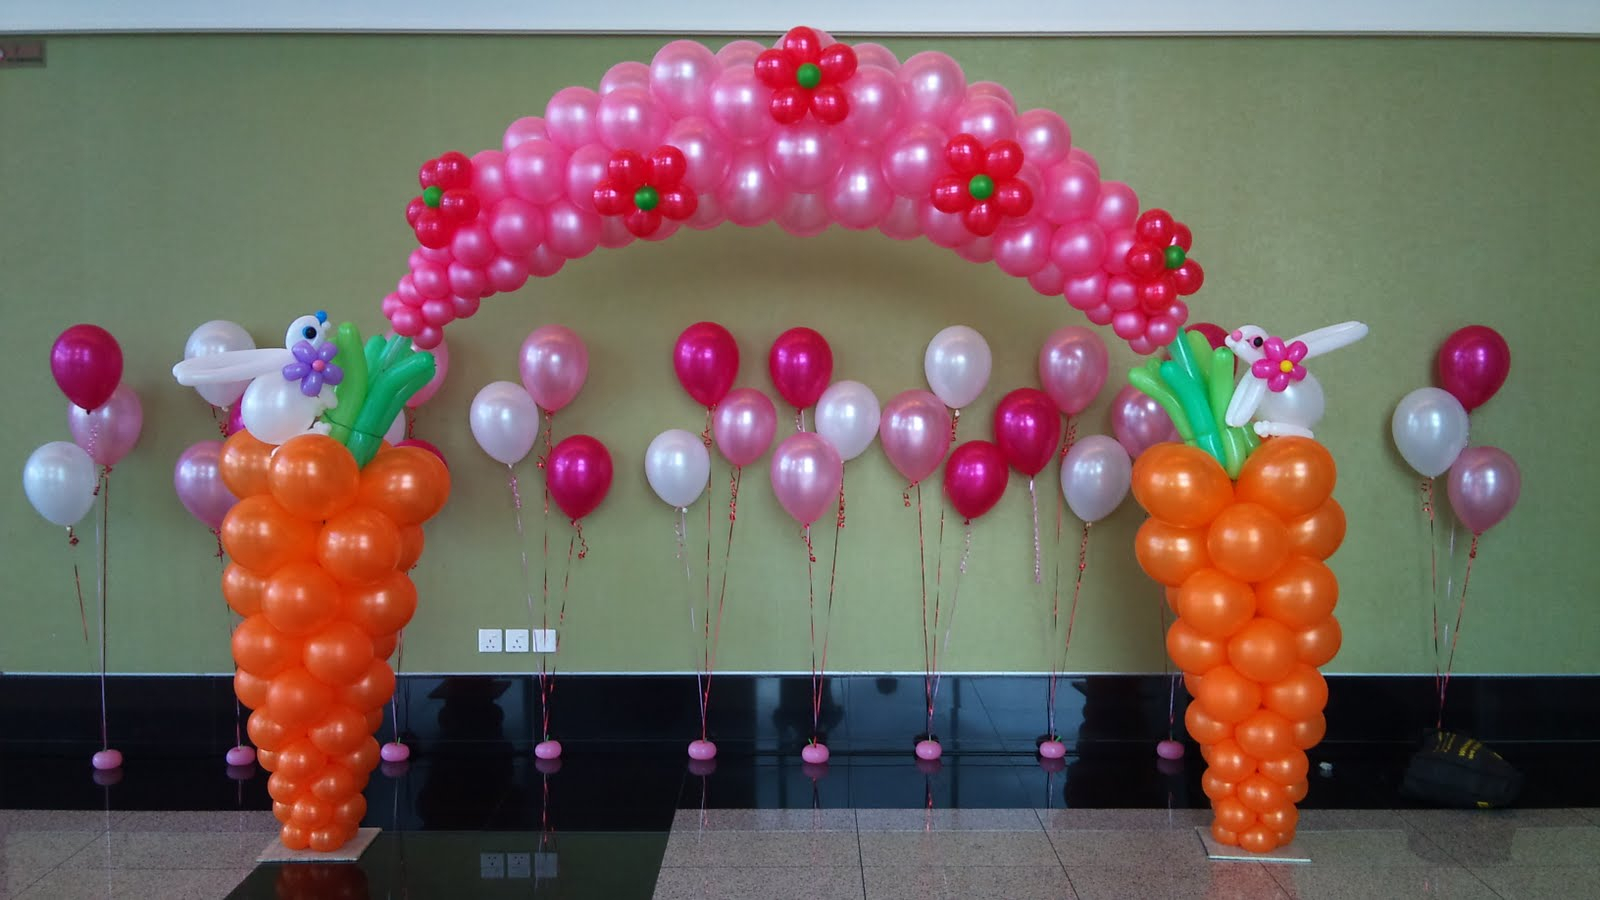 Balloons Decoration Ideas For Birthday Party Impressive Balloon Decoration Ideas #balloon #topiary #venue